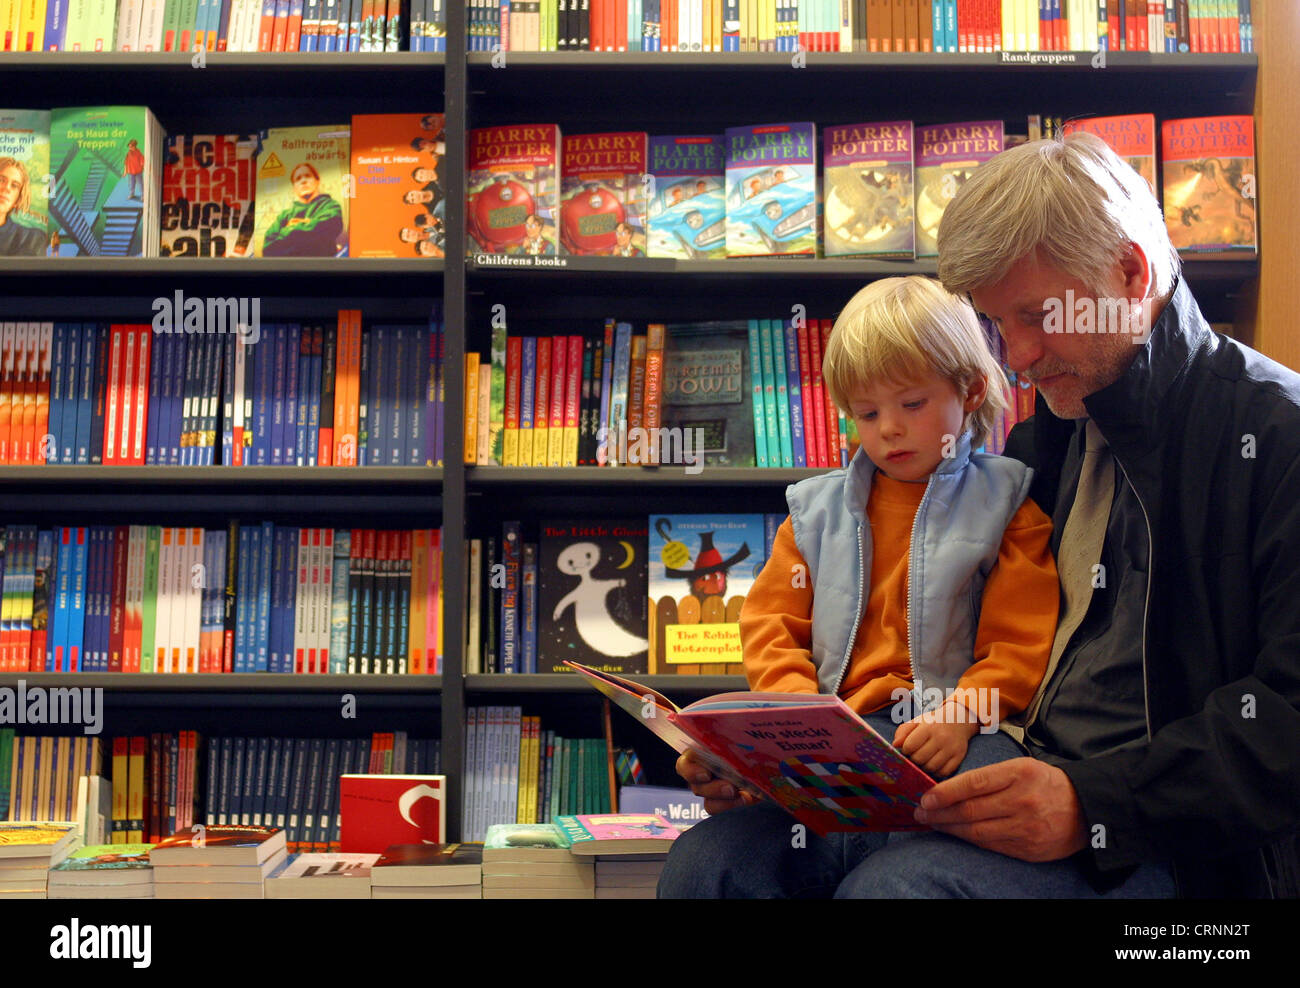 Father - Son - Reading - Bookstore in Food Stock Photo